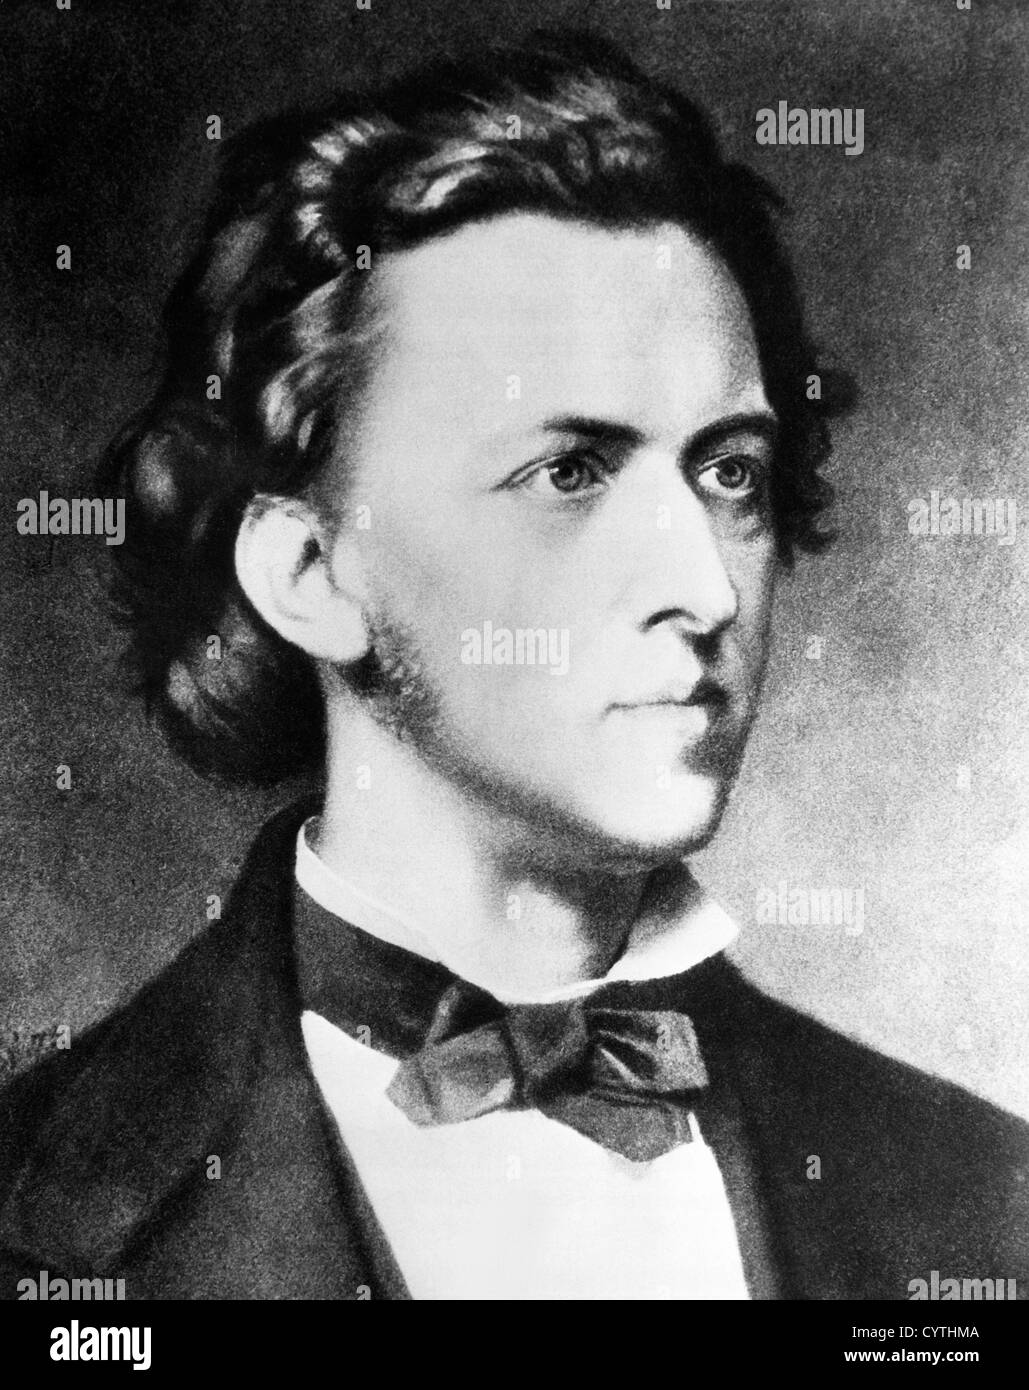 Frederick Chopin, composer - Stock Image